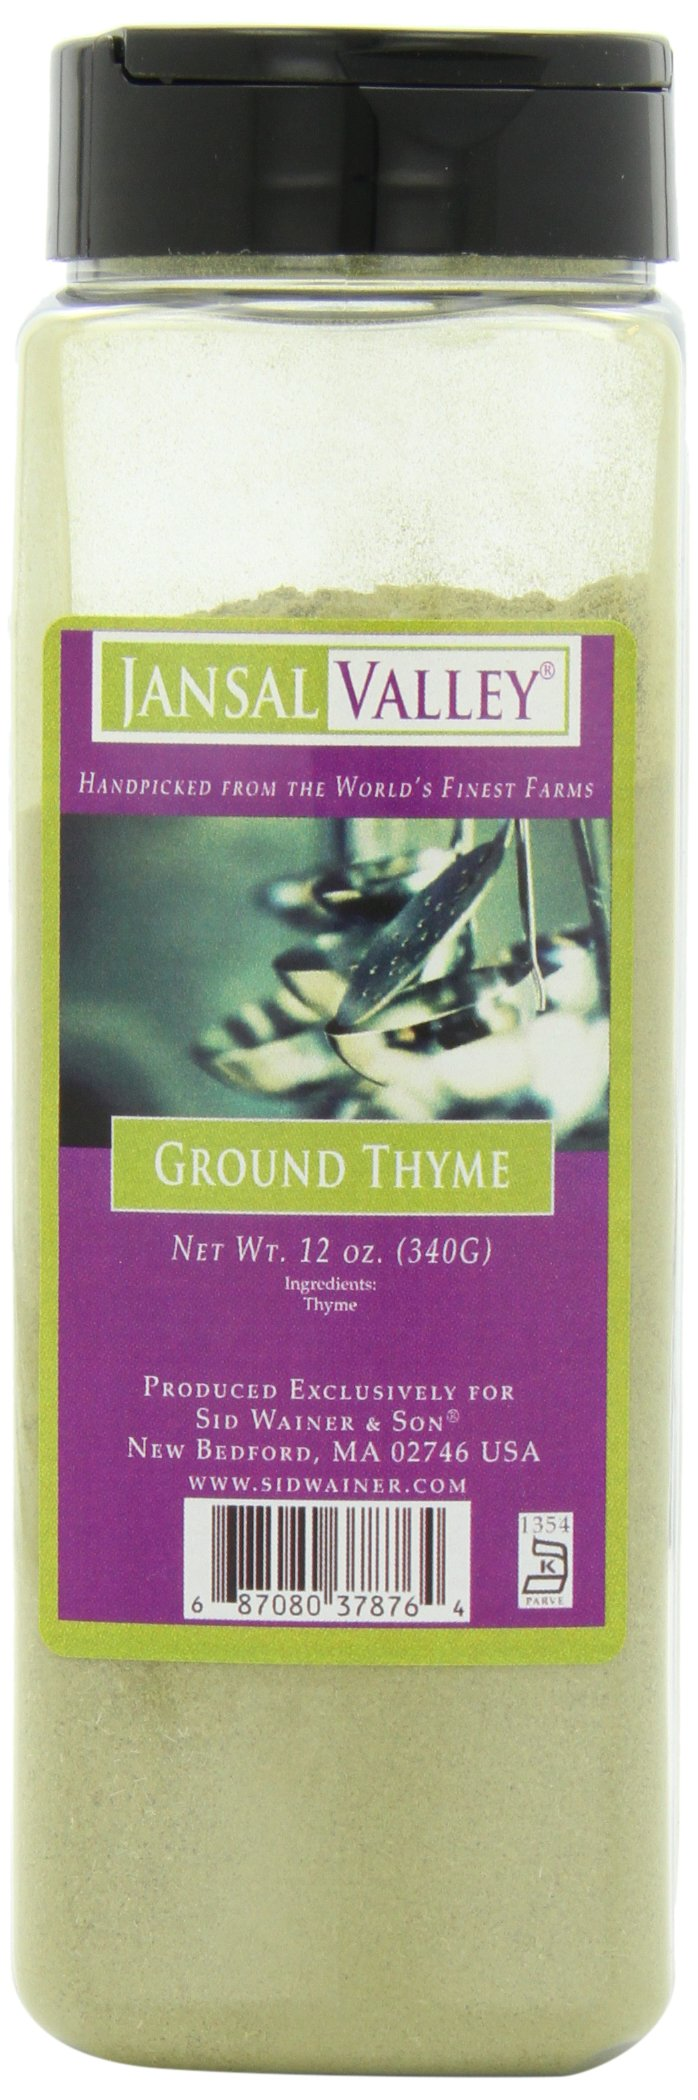 Jansal Valley Ground Thyme, 12 Ounce